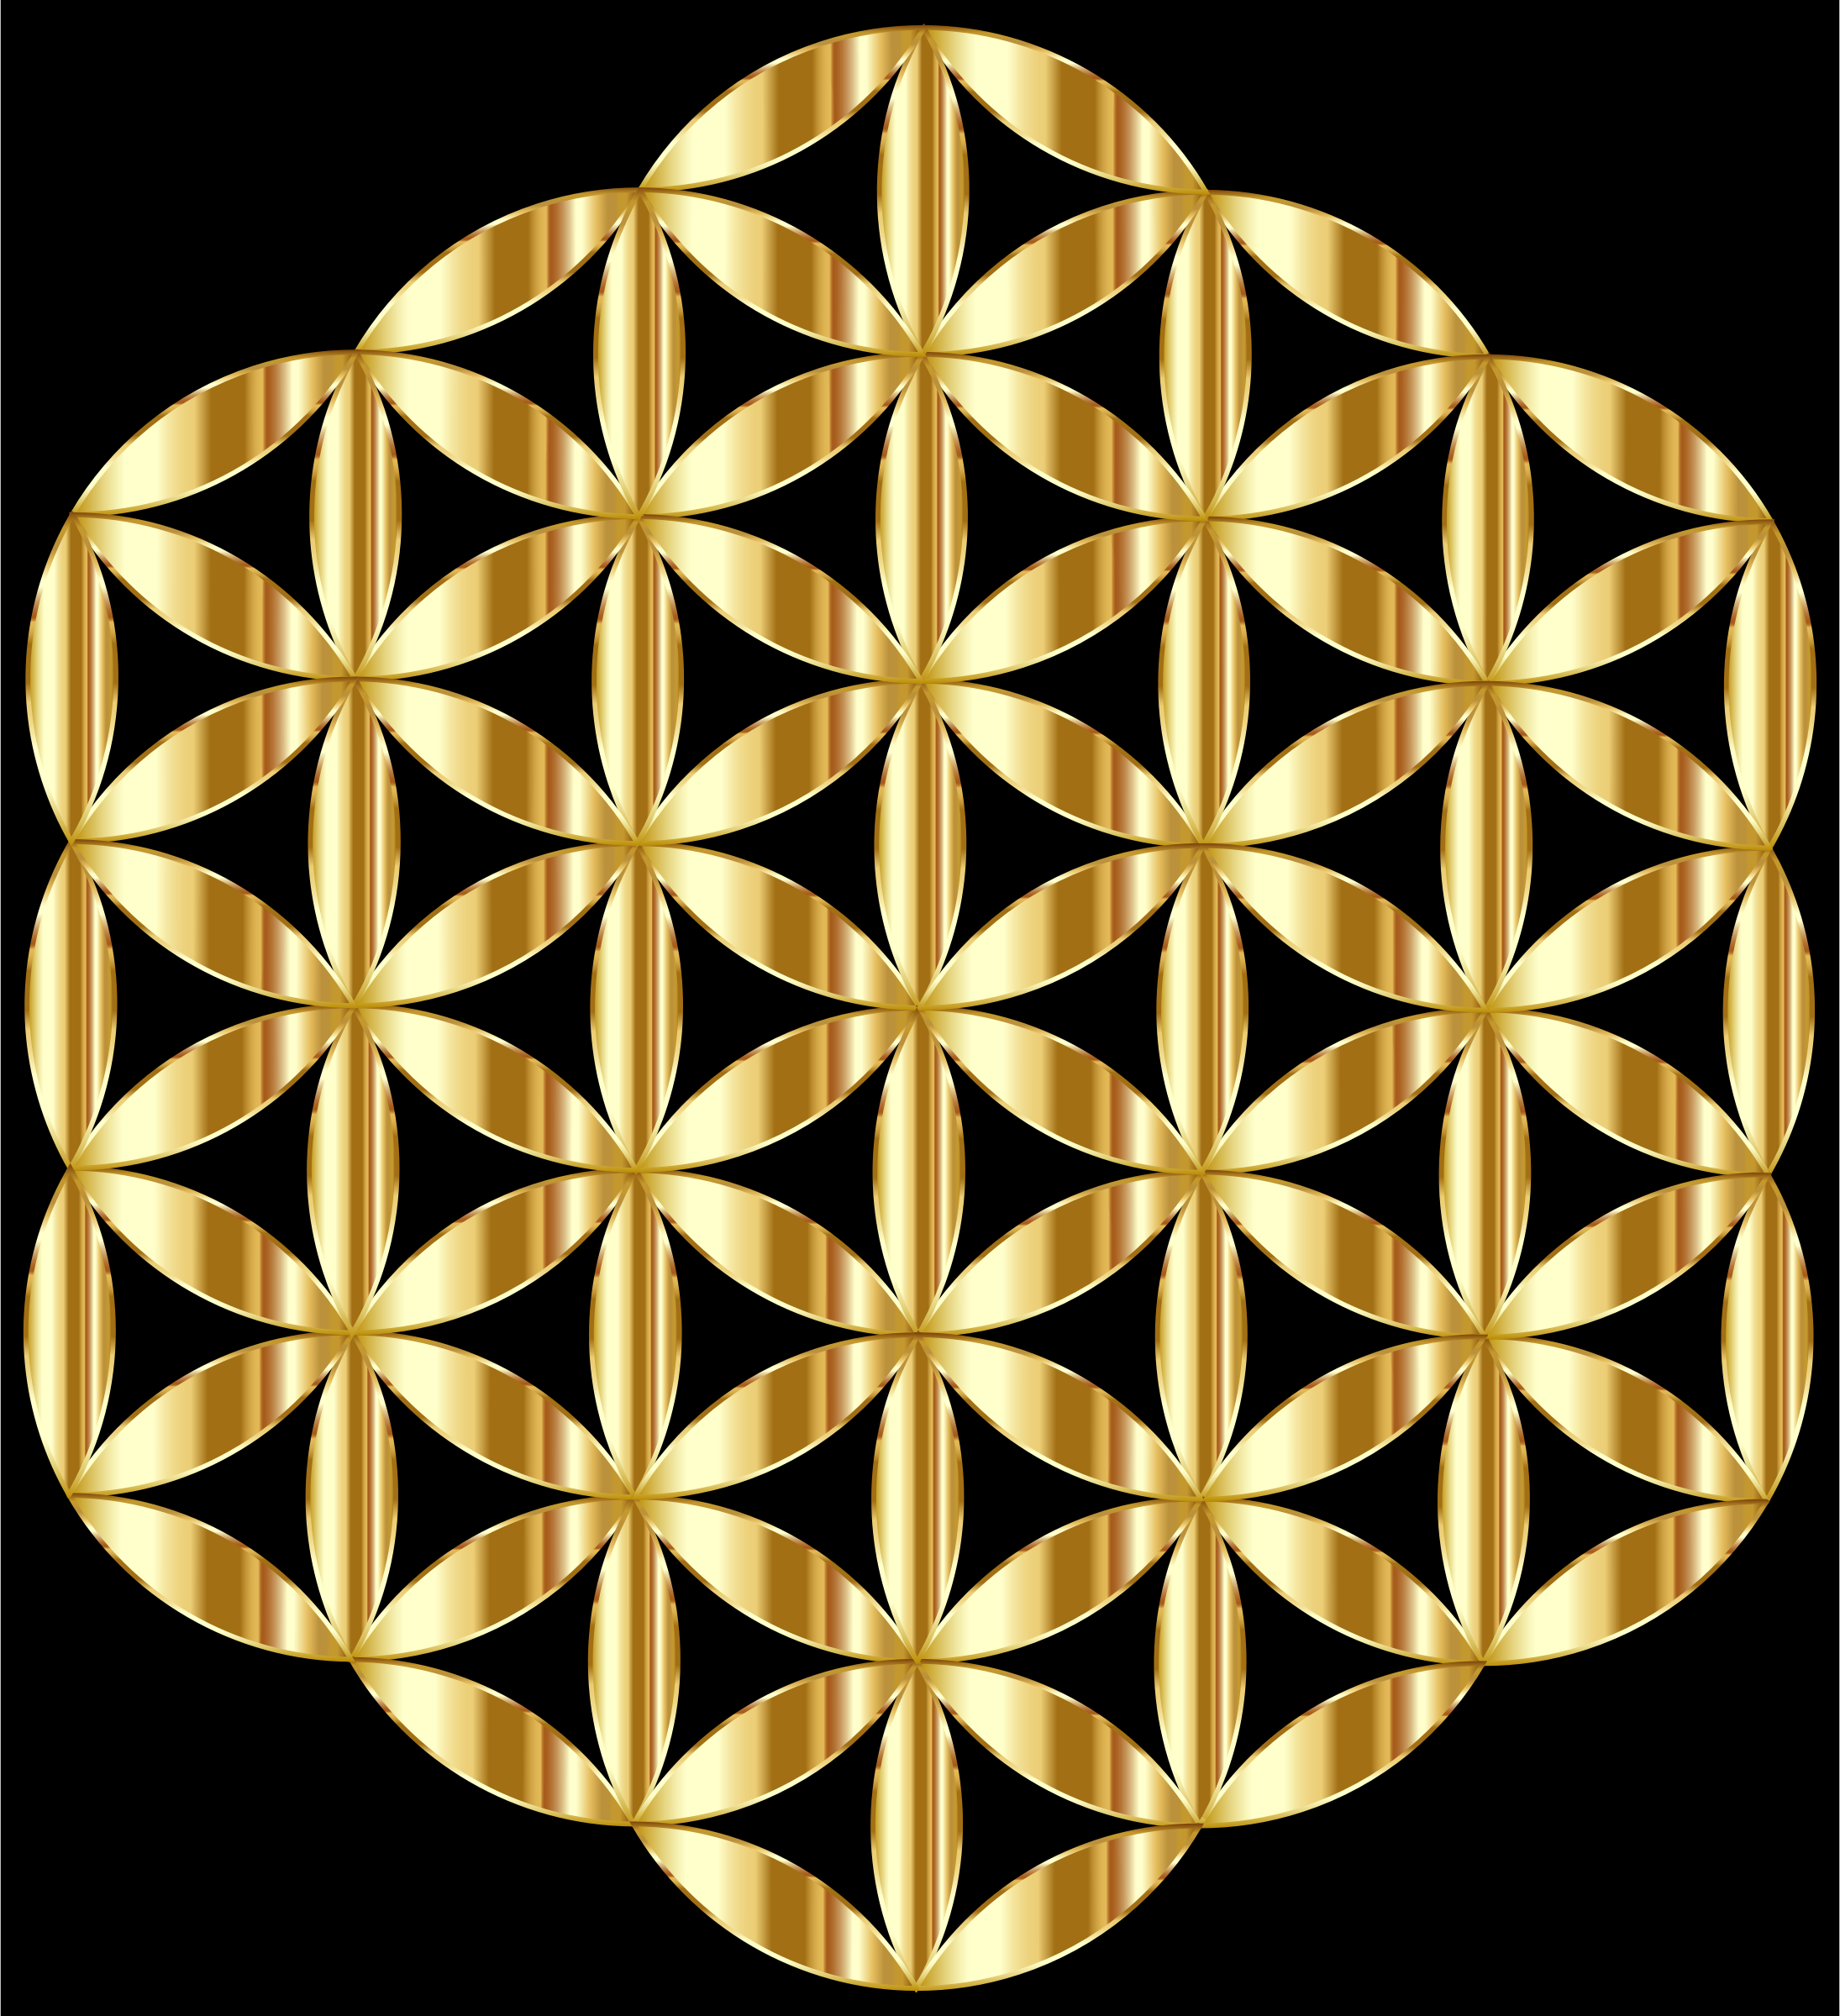 Gold Flower Of Life by GDJ